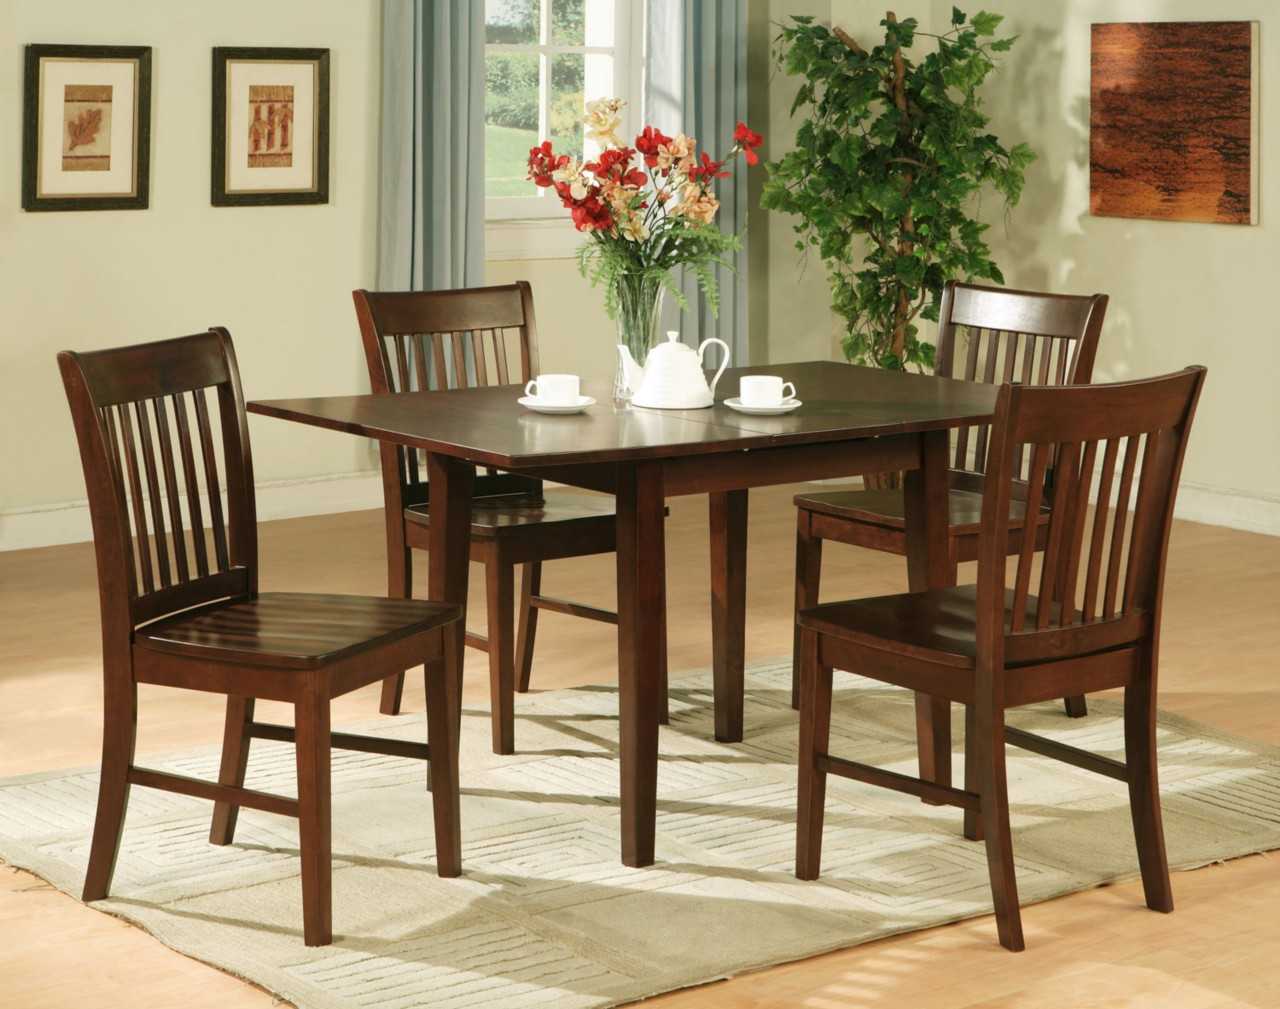 5pc rectangular kitchen dinette table 4 chairs mahogany ebay for Kitchen dinette sets